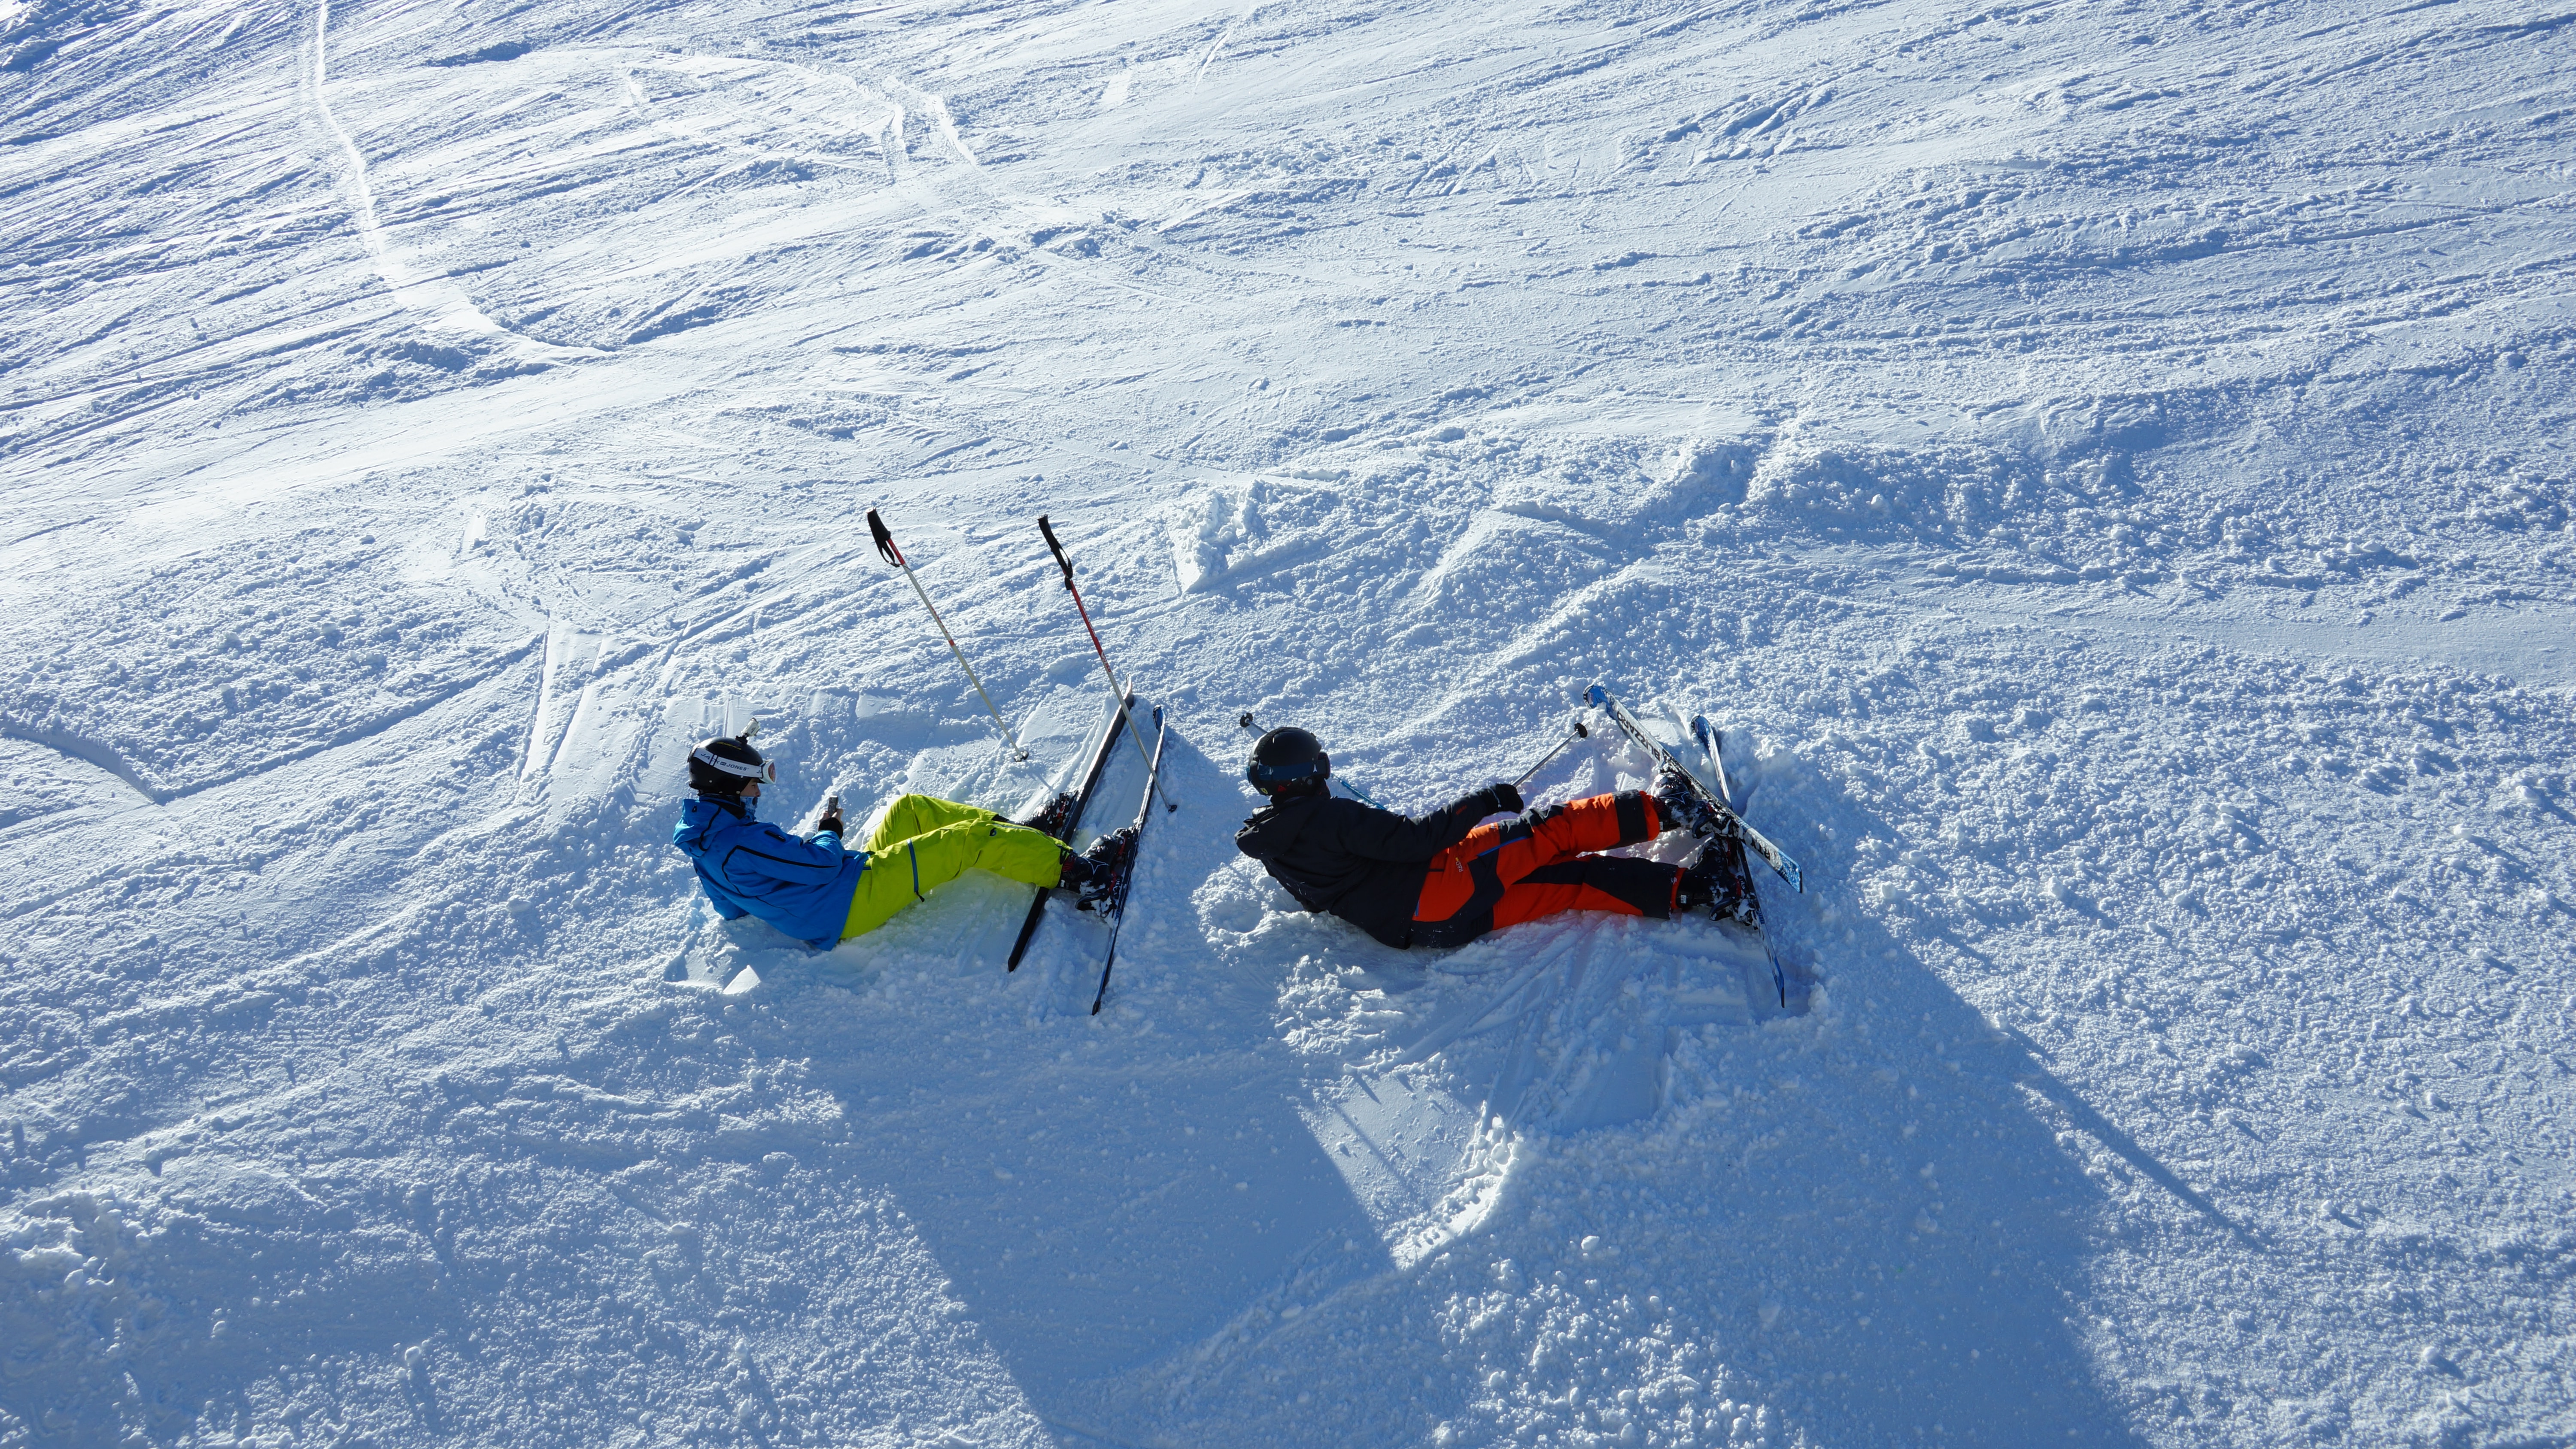 two men playing skis on field